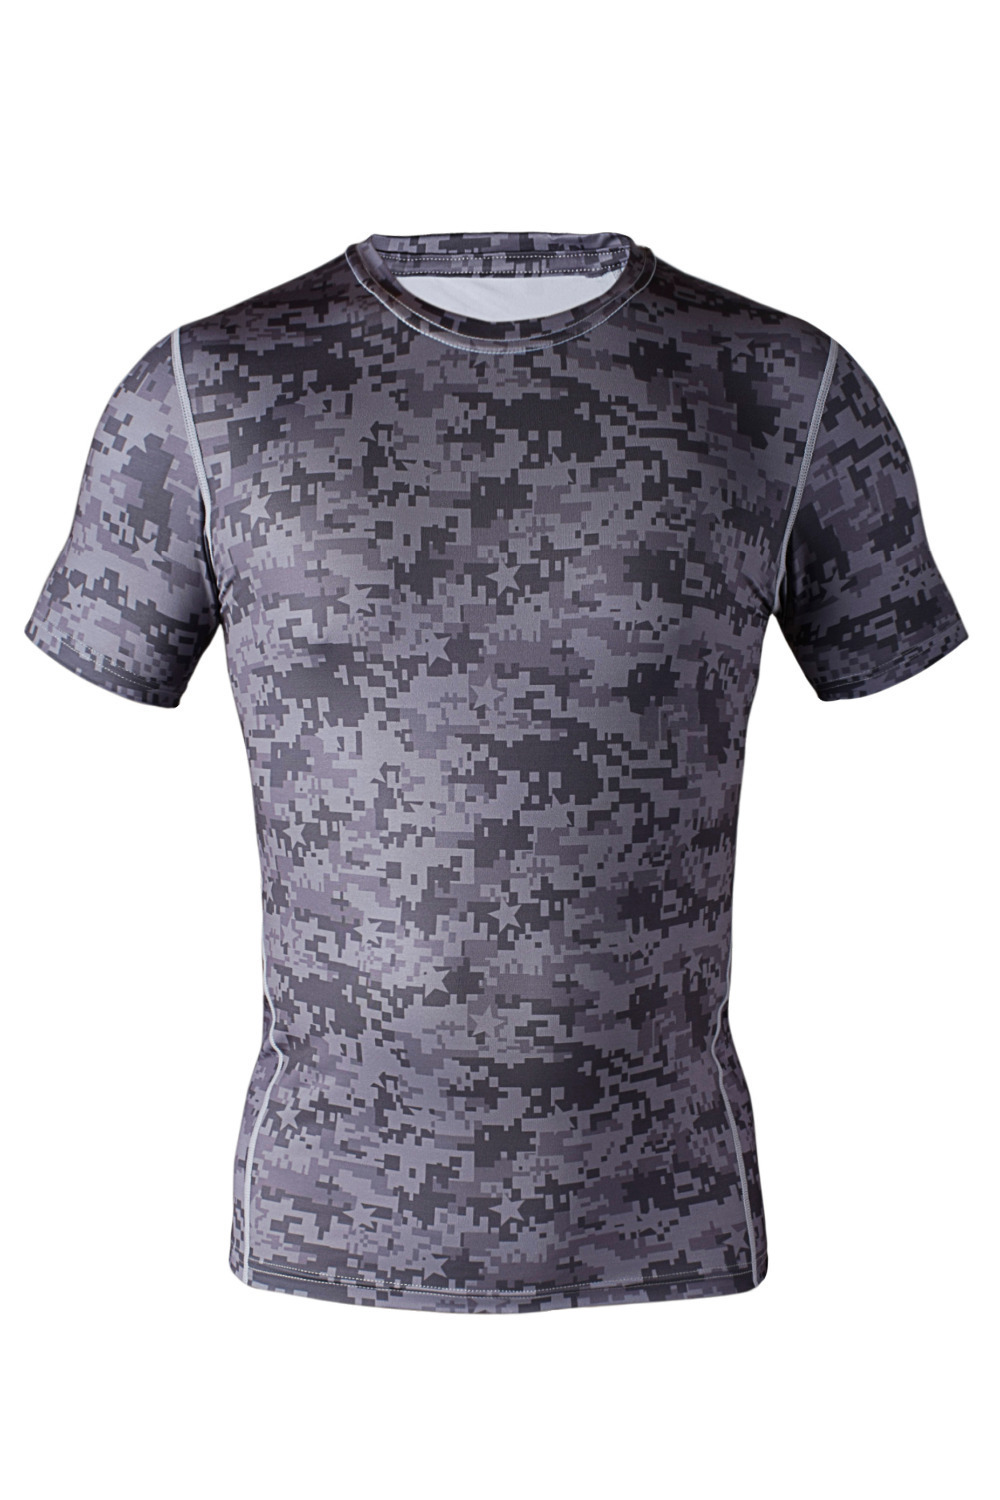 Camouflage shirts new men camo clothing compression shirts for Dress shirts for athletic guys